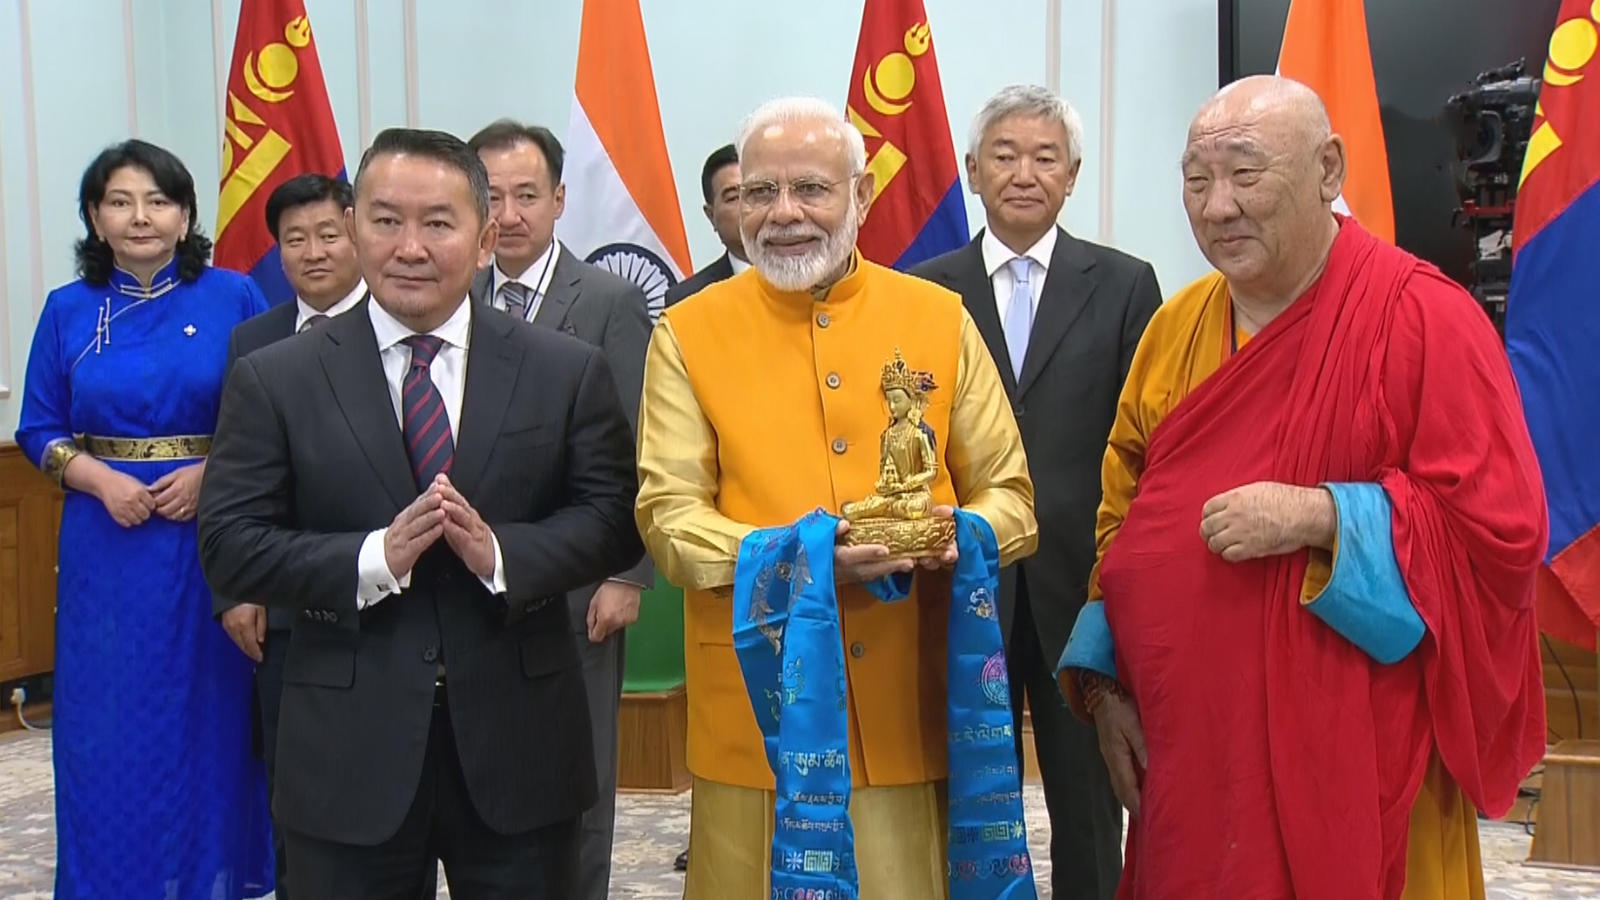 pm-modi-mongolian-president-unveil-lord-buddha-statue-in-mongolia-via-video-conferencing-in-delhi